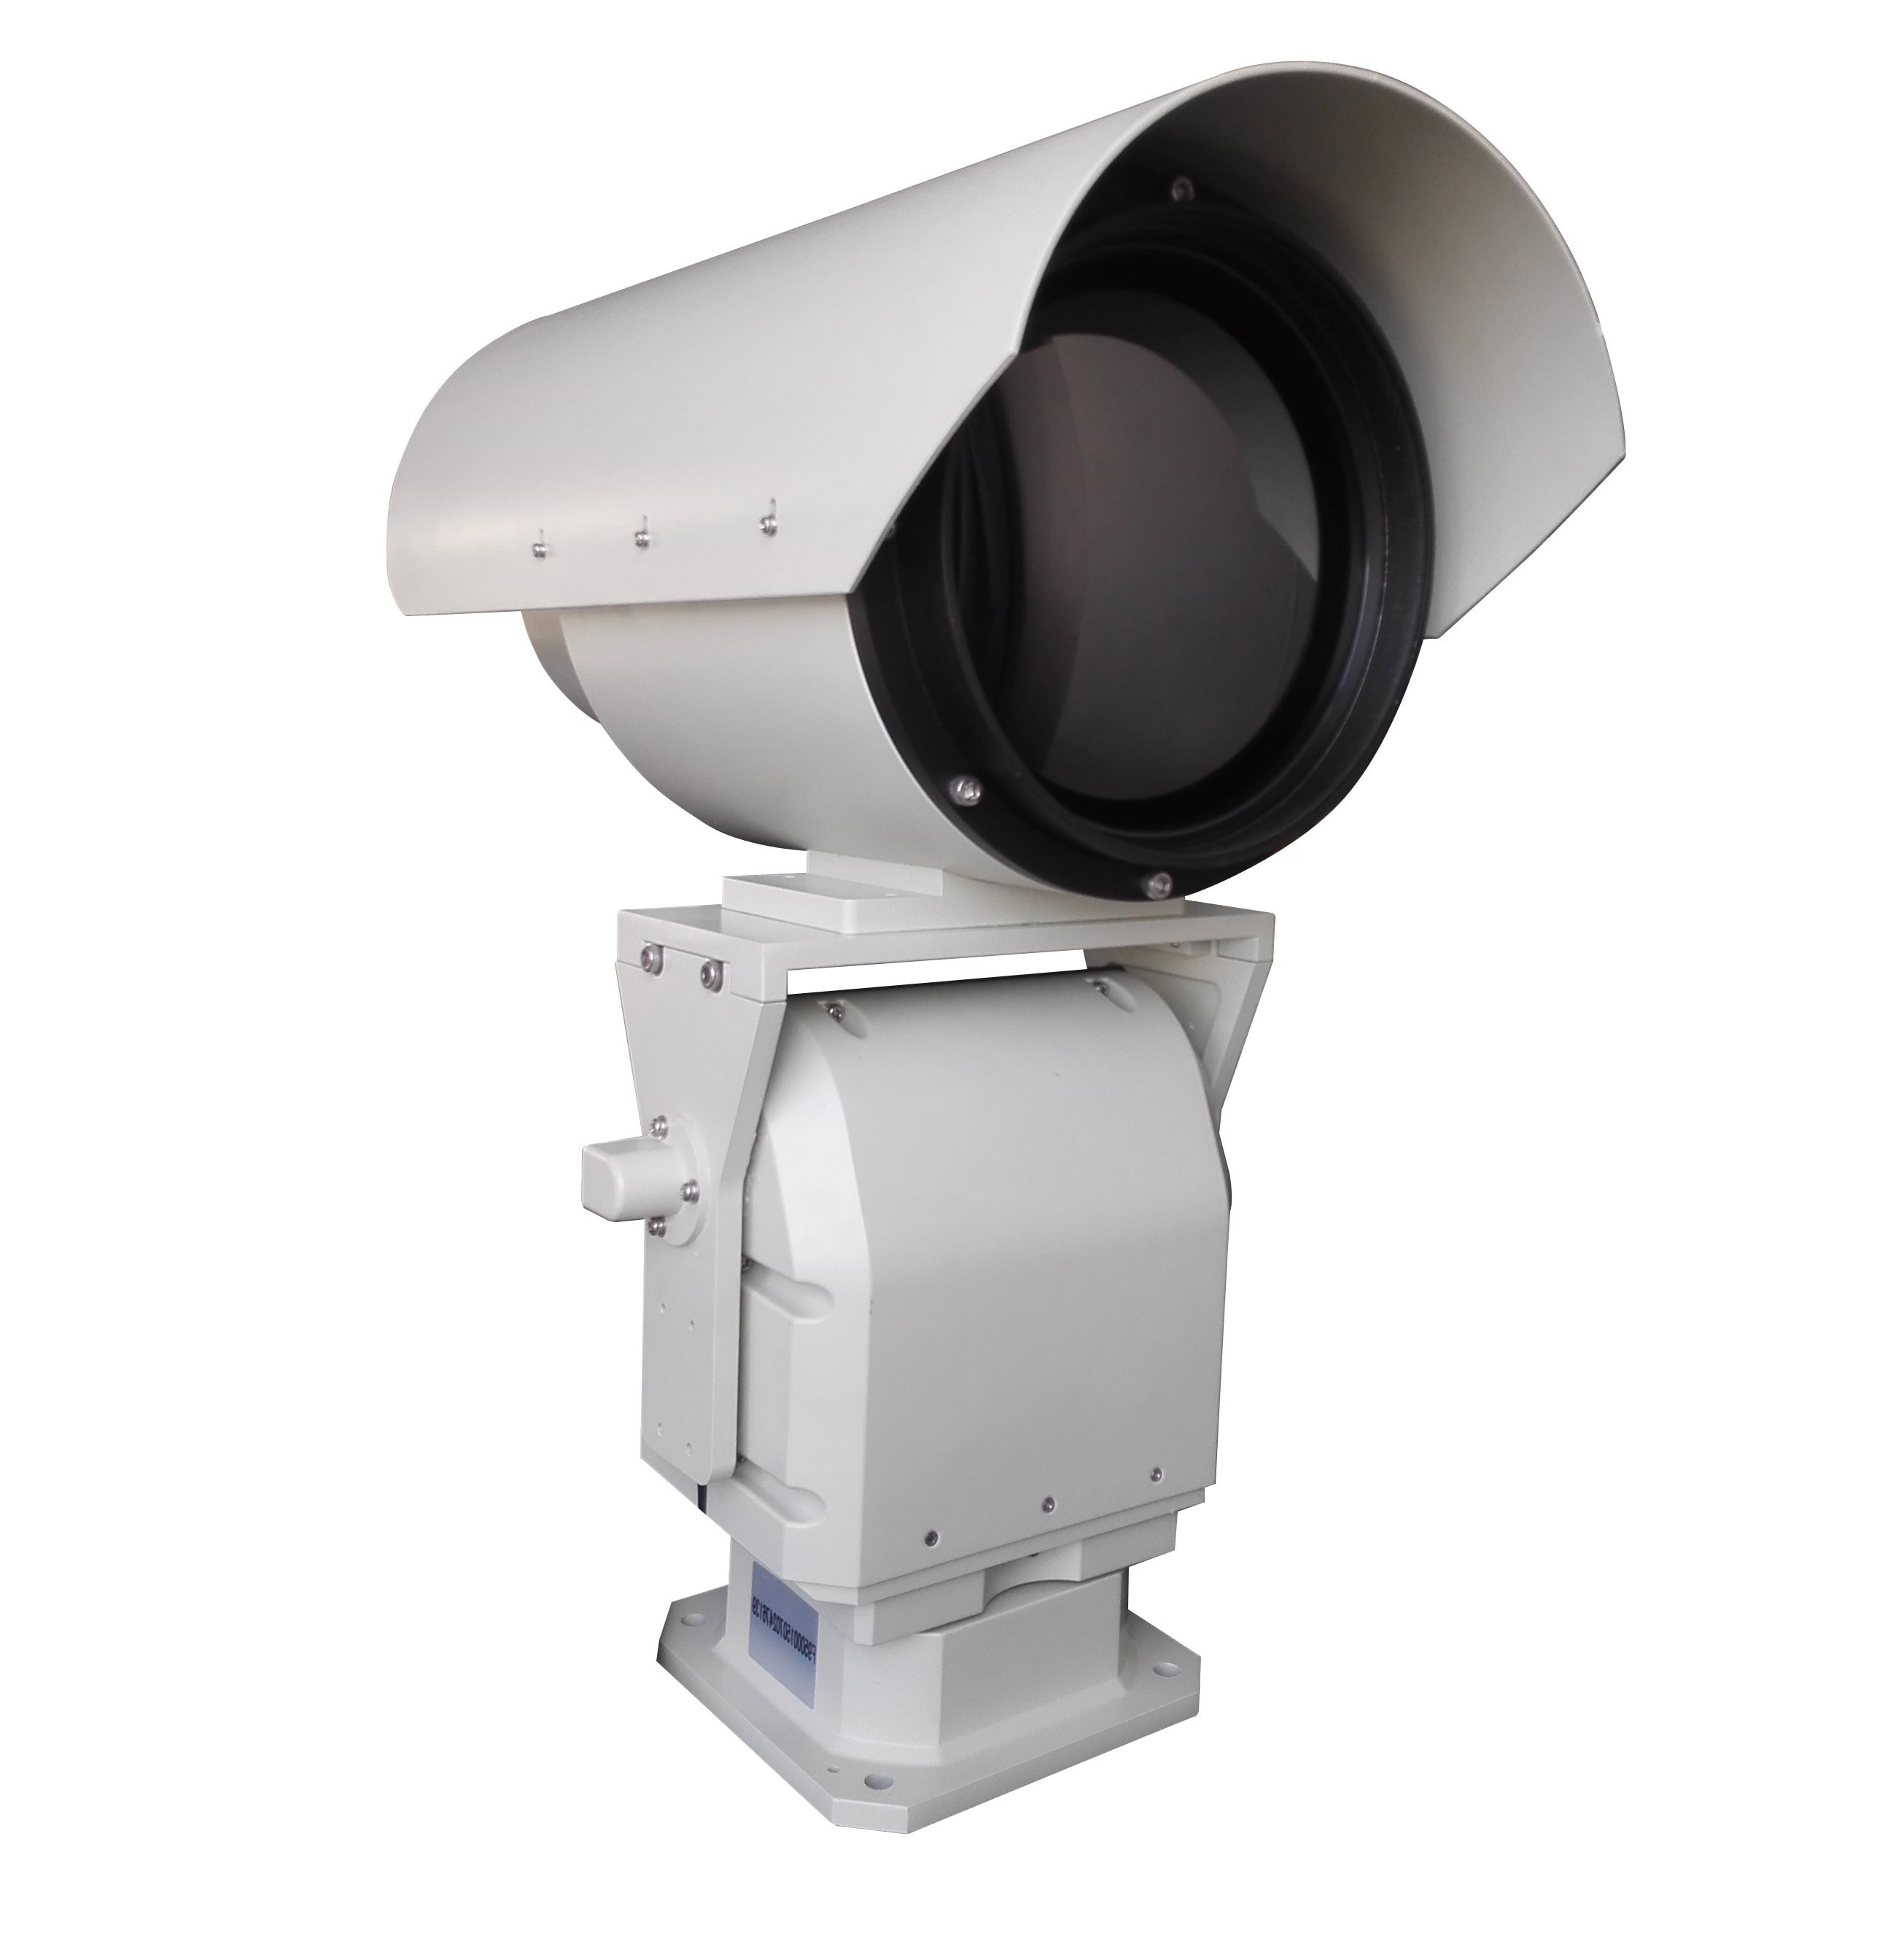 Factory direct boat detection airport security monitoring long range PTZ thermal camera